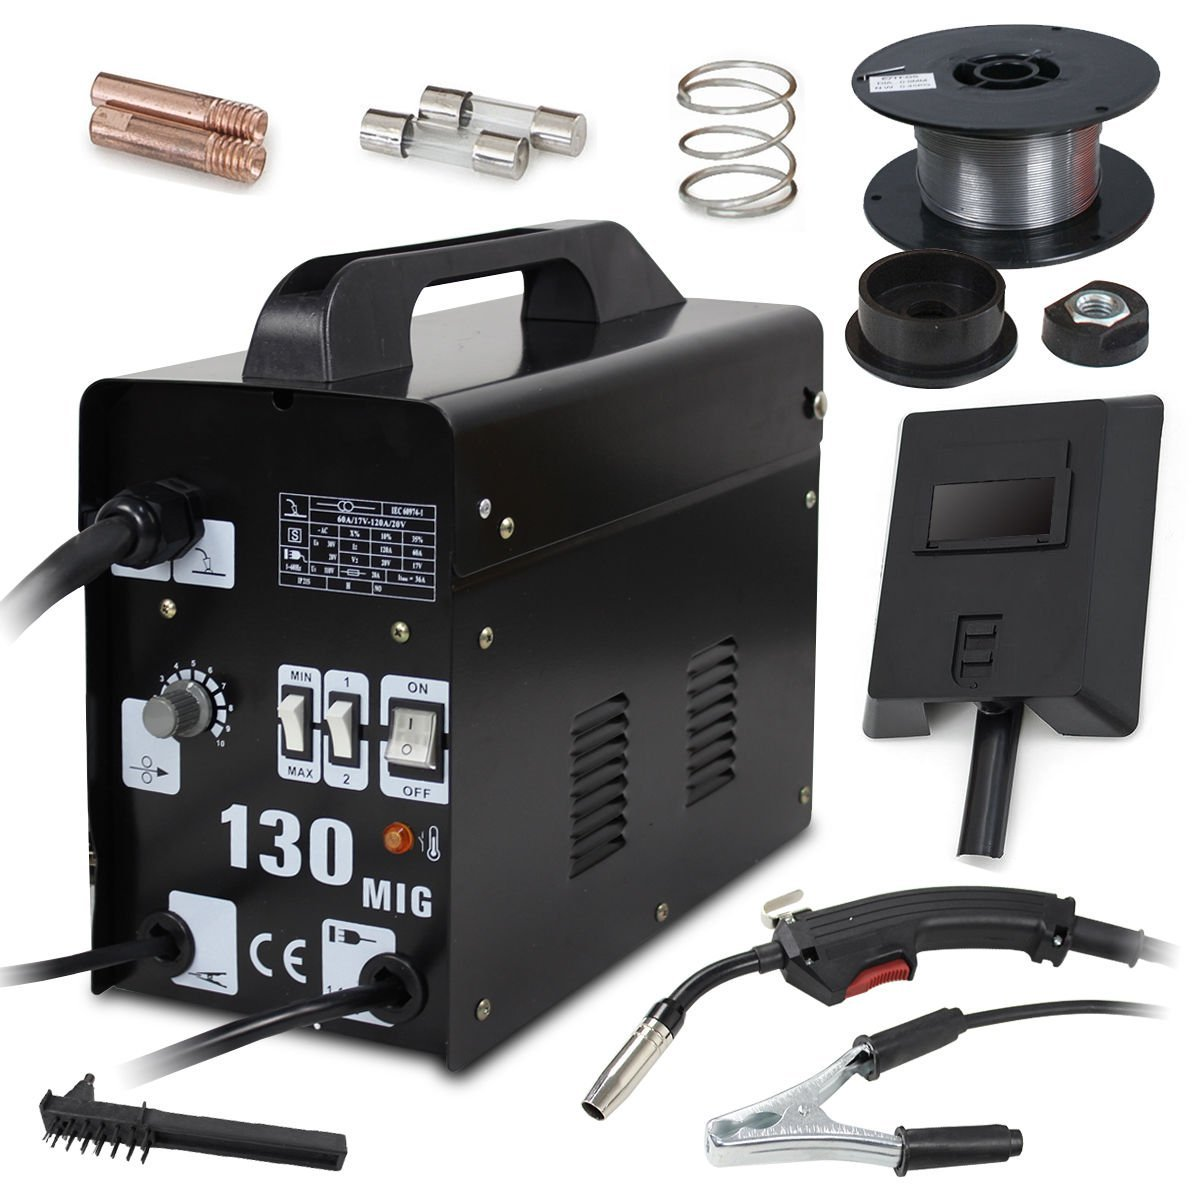 Best MIG Welder - Reviews and Quick Buying Guide 2018 - MIG Welding